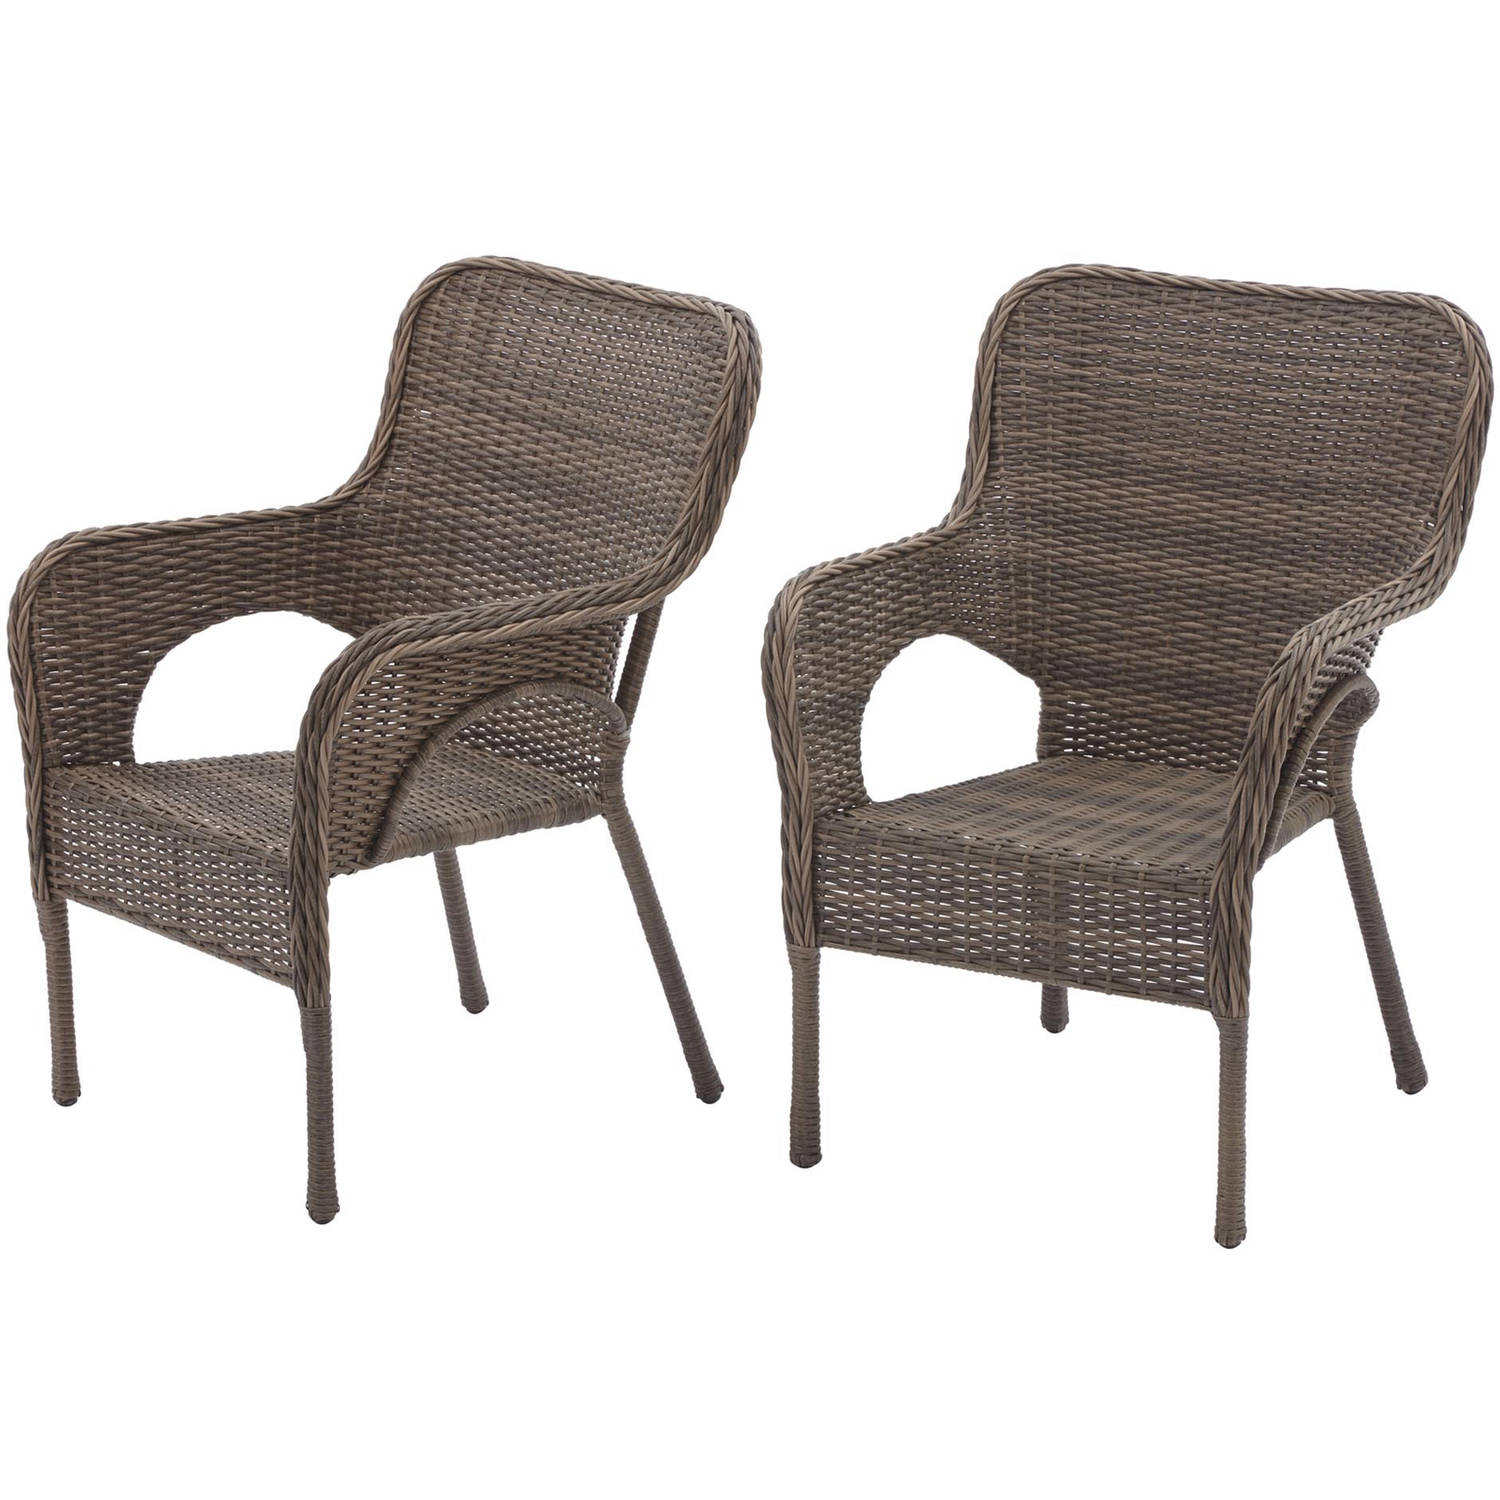 outdoor chairs better homes and gardens camrose farmhouse mix and match stacking wicker  chairs, set of 2 - SWJVGAE